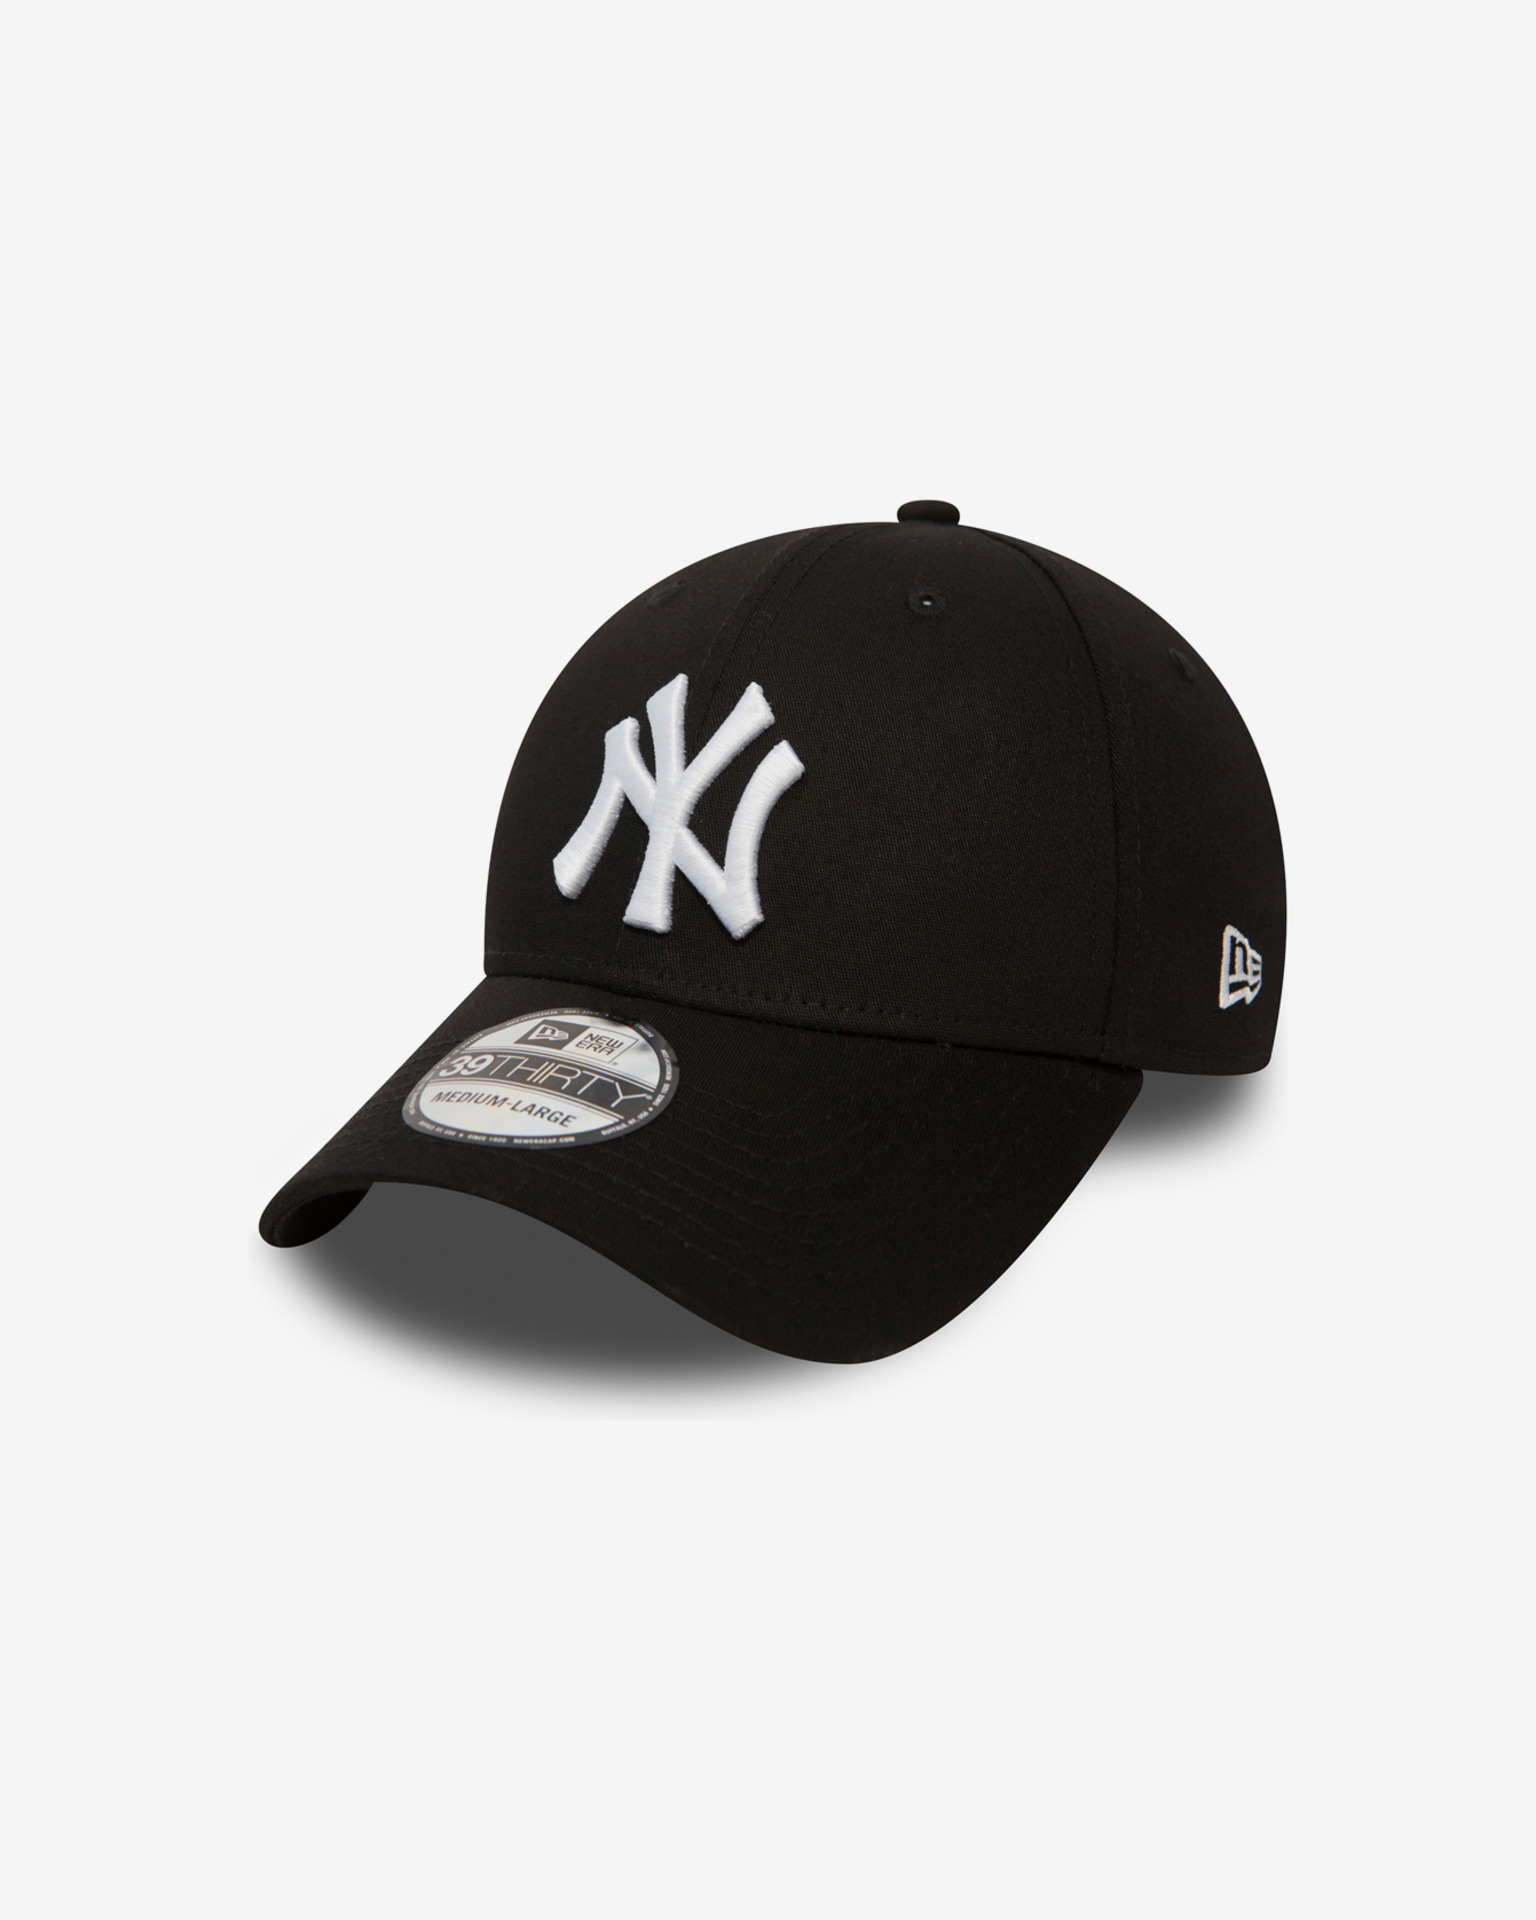 NY Yankees Classic Black 39Thirty Šiltovka New Era